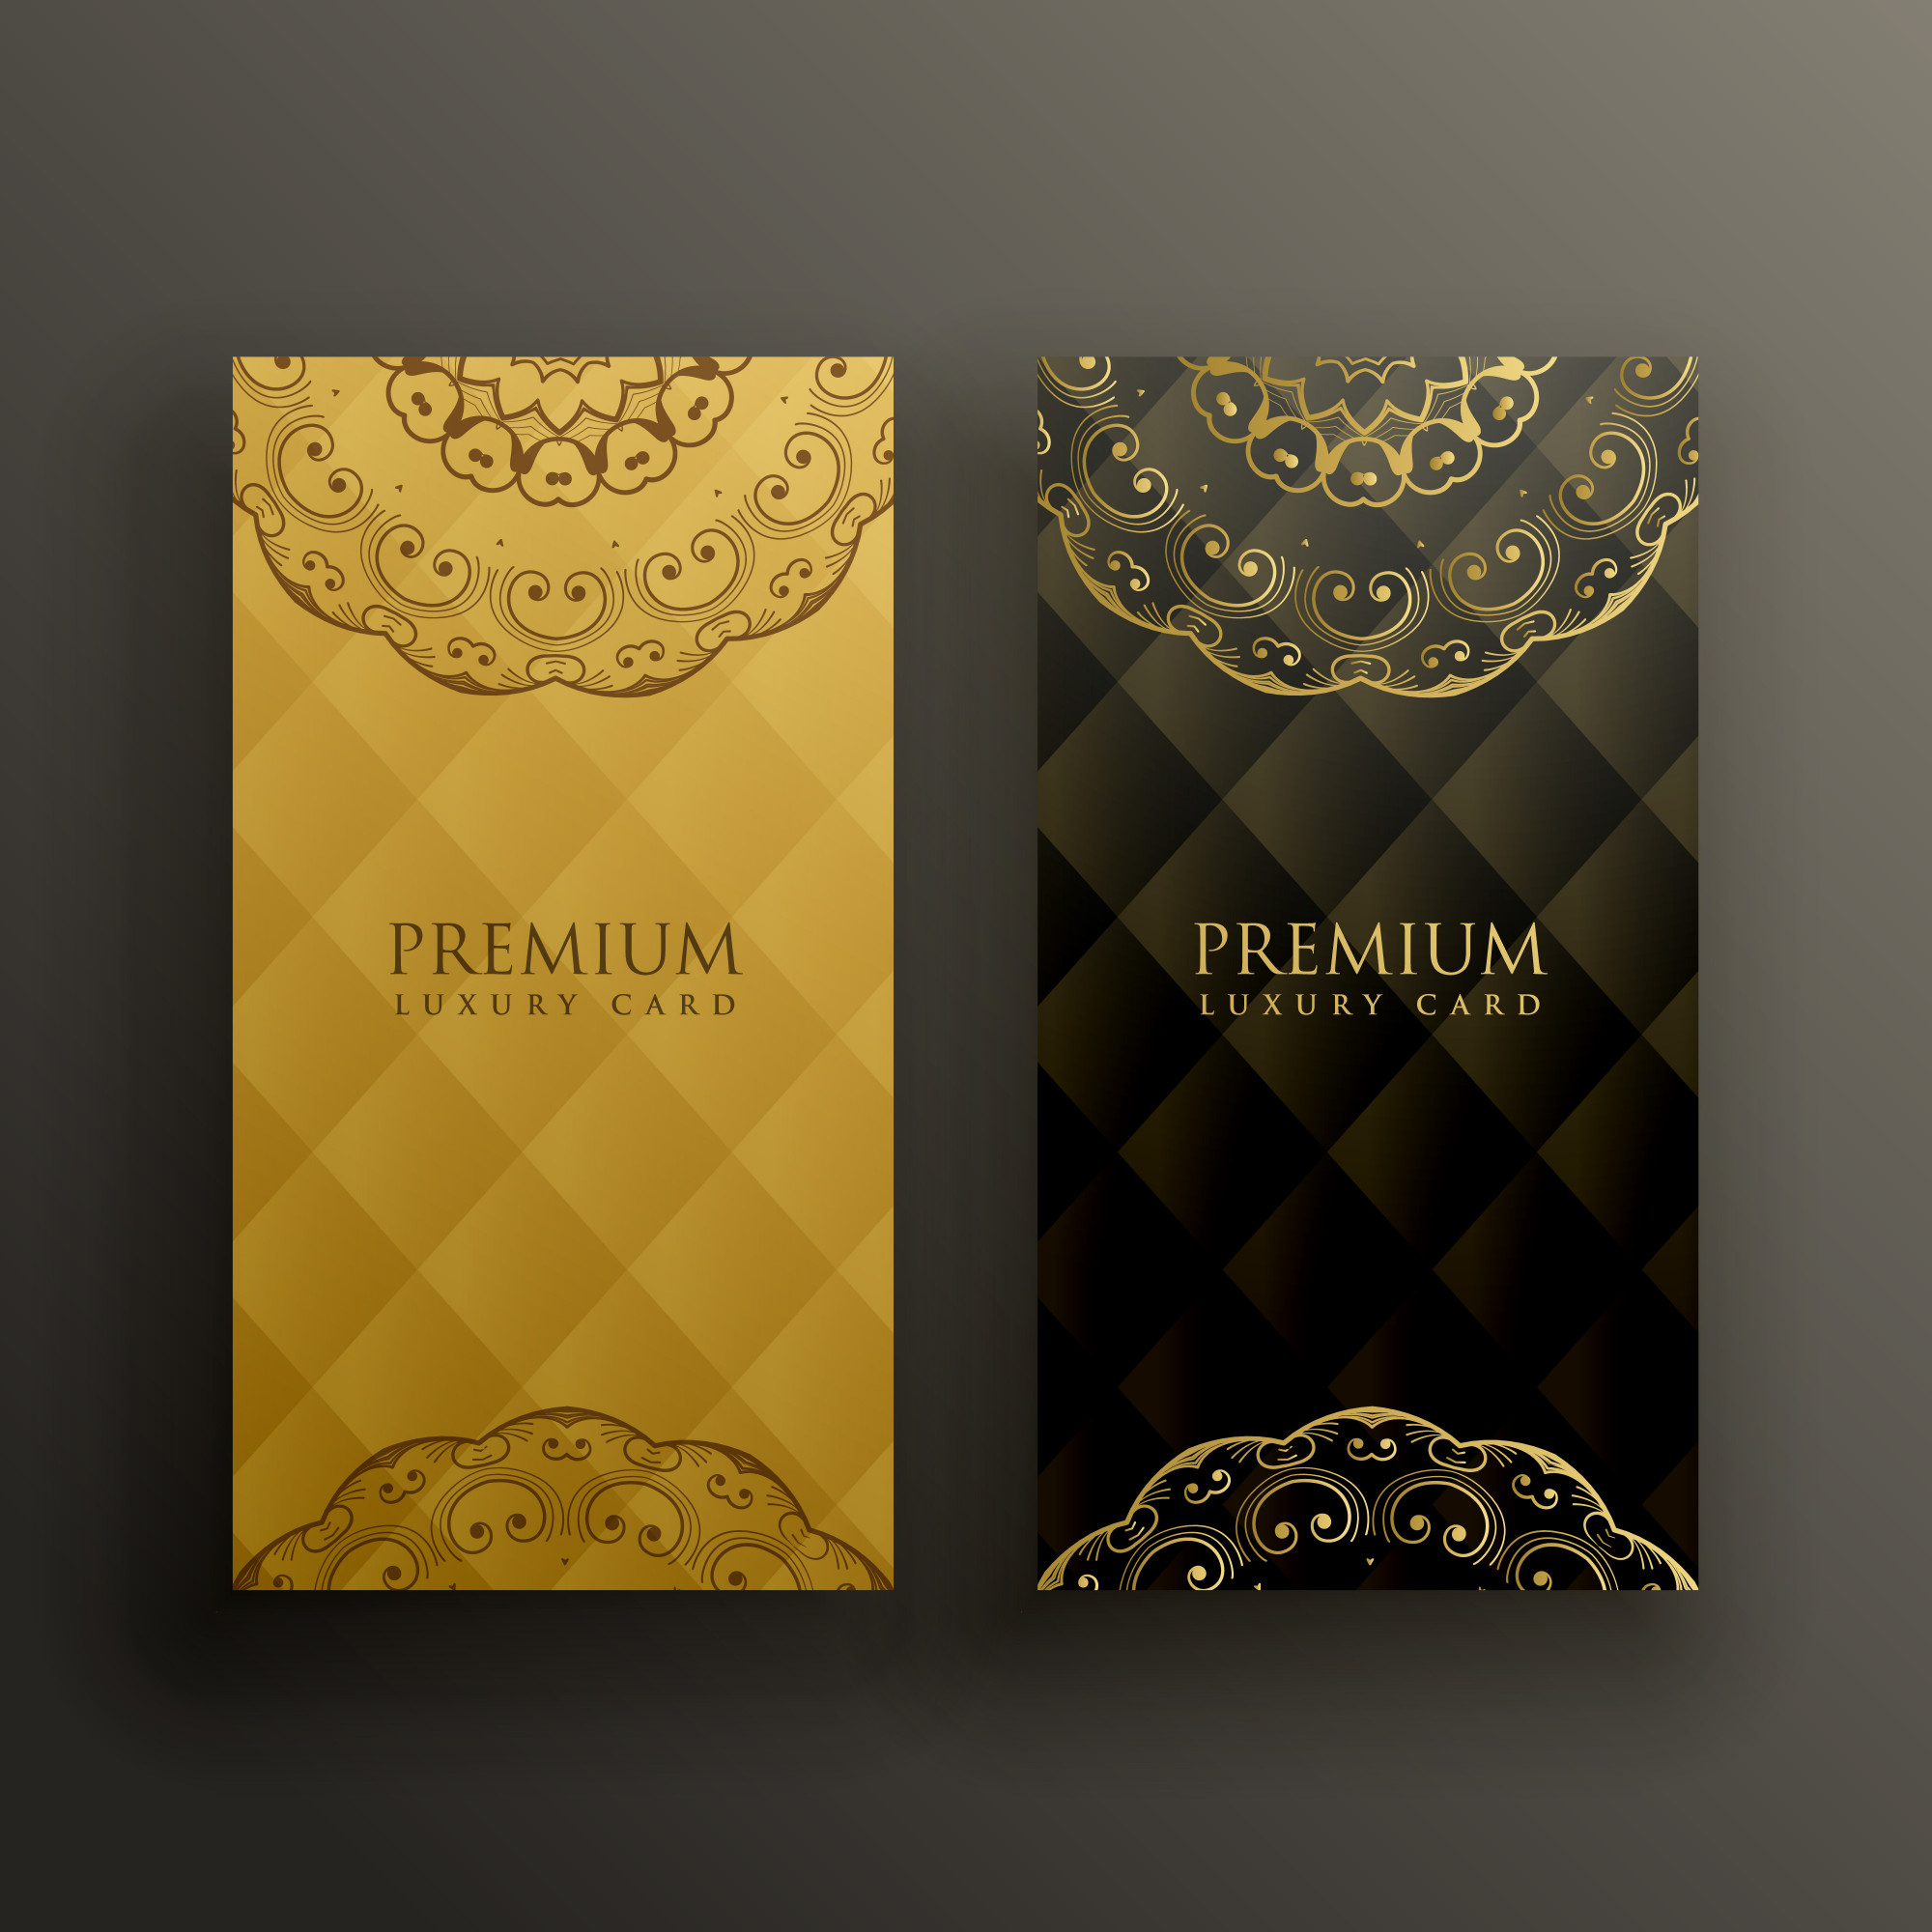 Stylish mandala premium golden card design